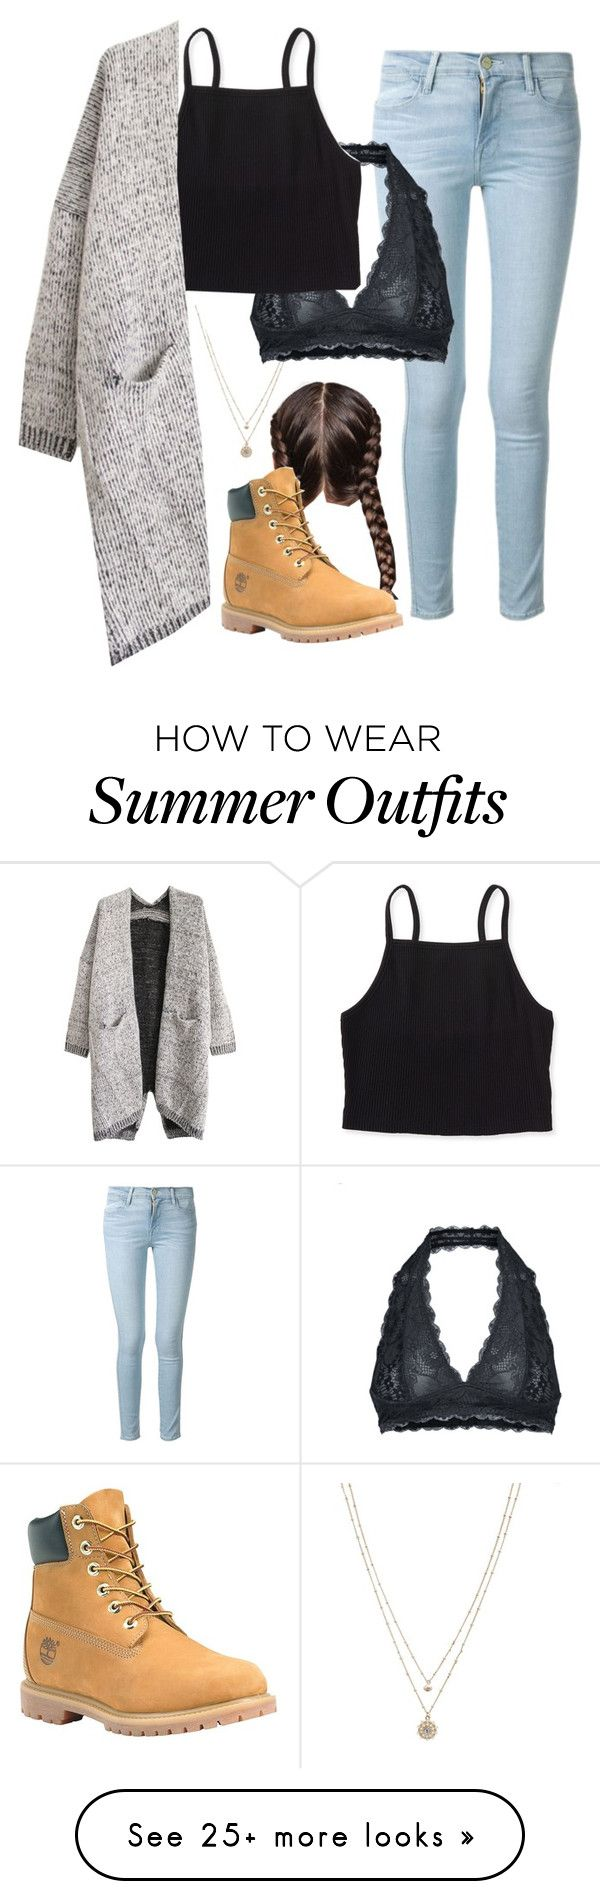 """""""school outfit 1"""" by g-wear on Polyvore featuring LC Lauren Conrad, Frame Denim, Free People, Aéropostale, Timberland, BackToSchool, school and schooloutfit"""